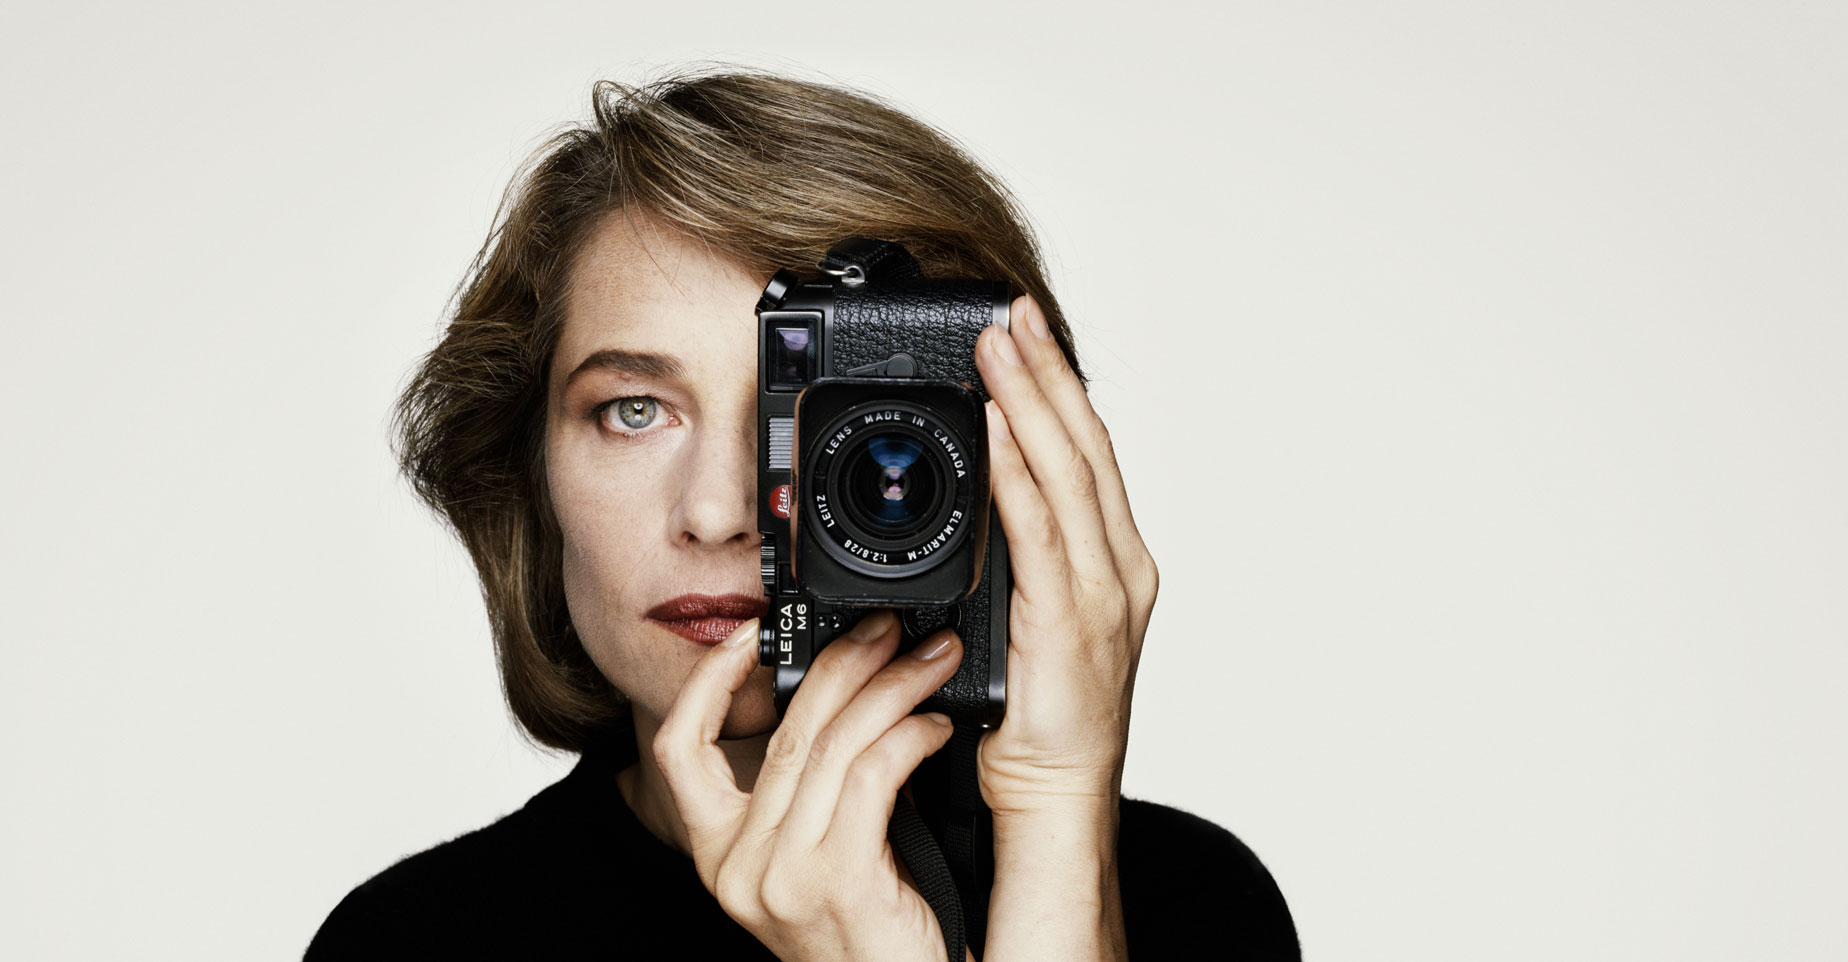 charlotte rampling young photos